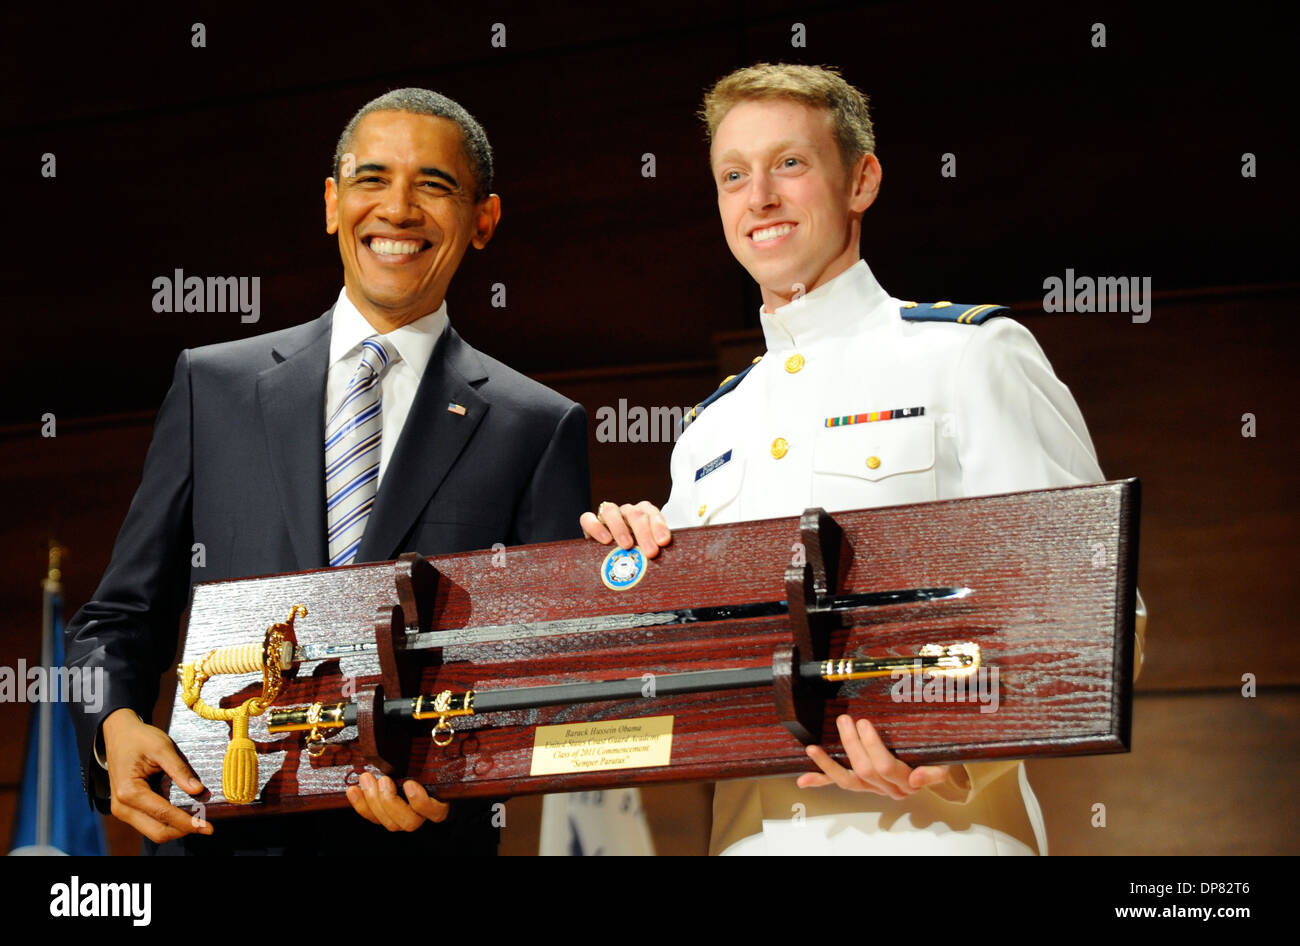 US President Barack Obama during the Coast Guard Academy's 130th commencement ceremony May 18, 2011 in New London, - Stock Image